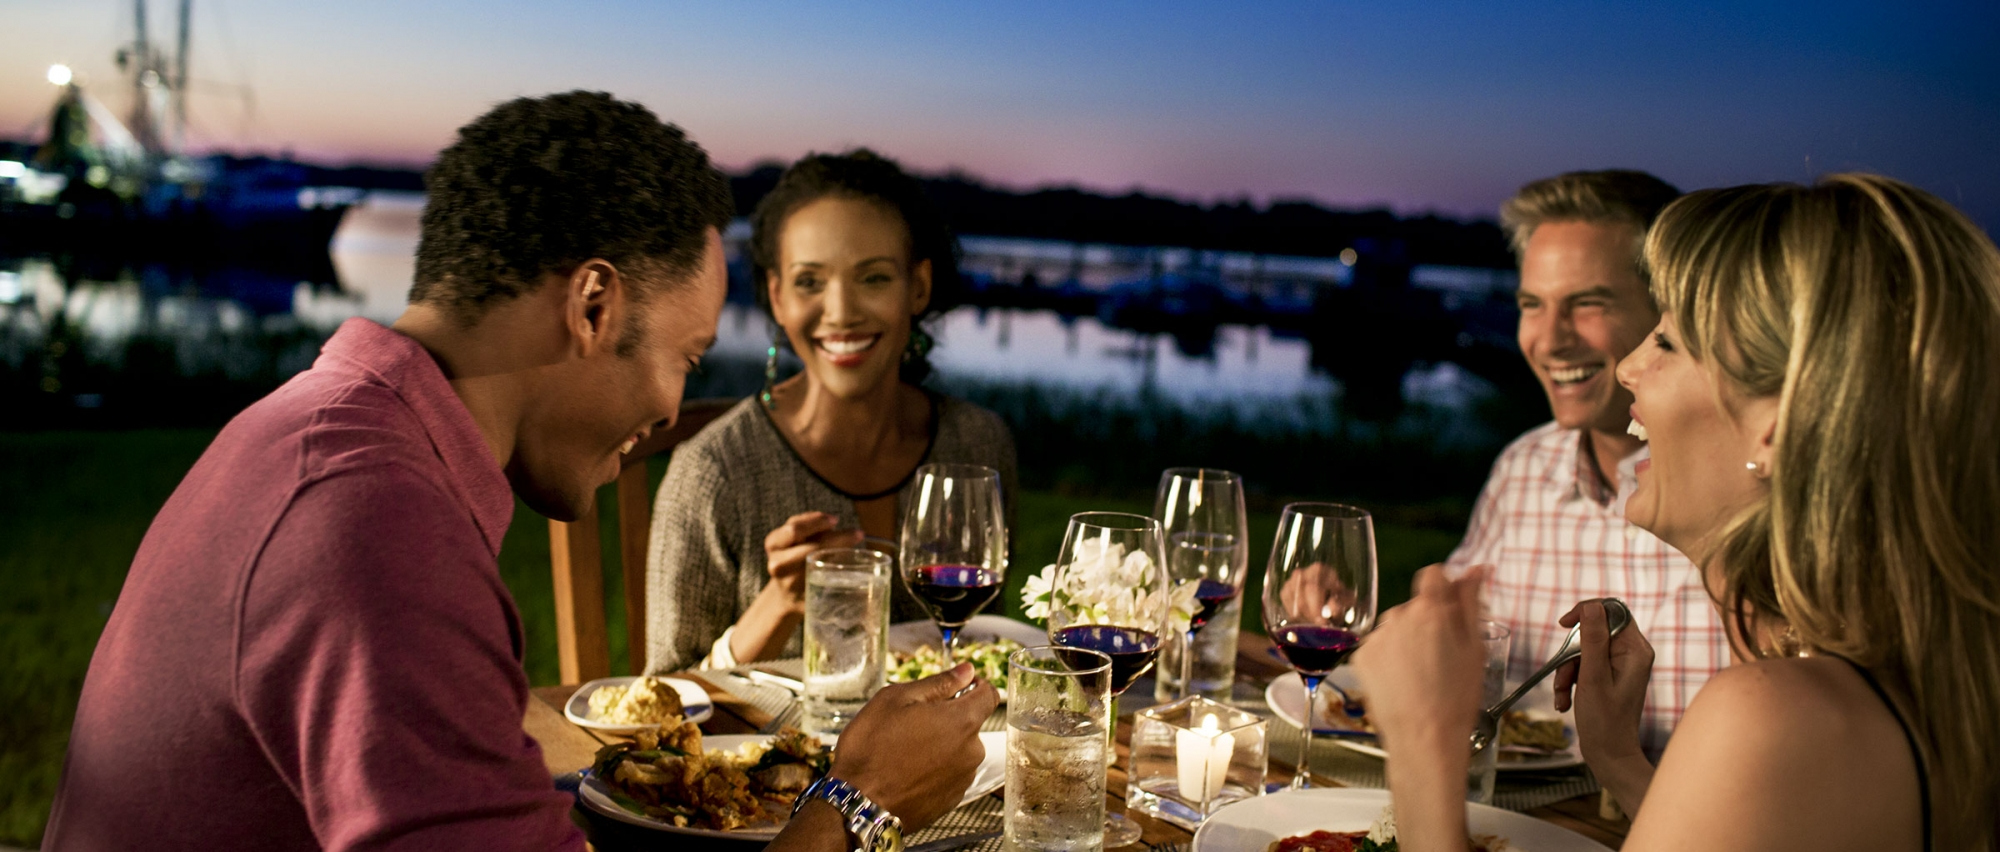 Couples dining outdoors at night near the marina